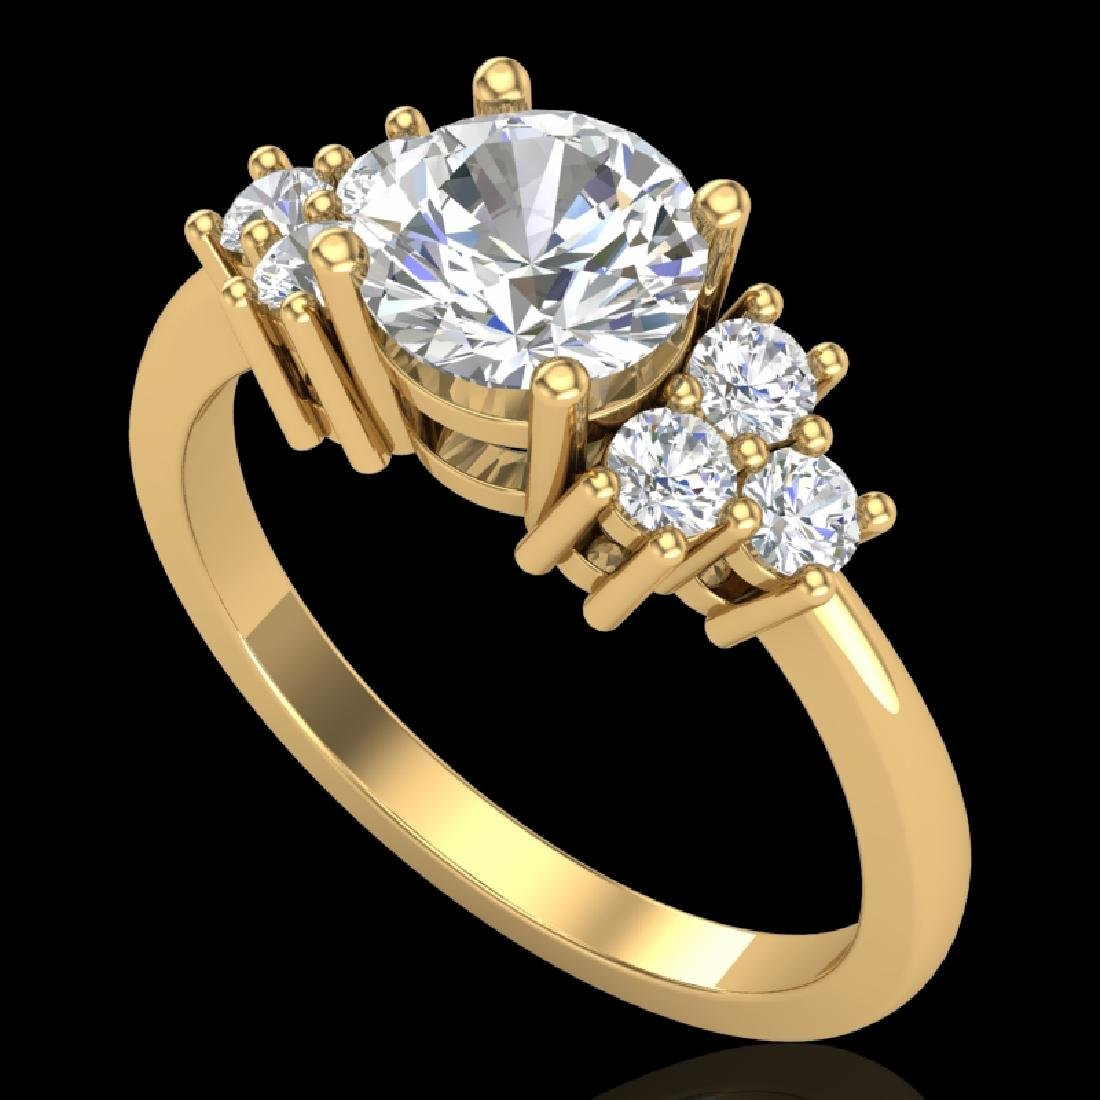 1.5 CTW VS/SI Diamond Solitaire Ring 18K Yellow Gold